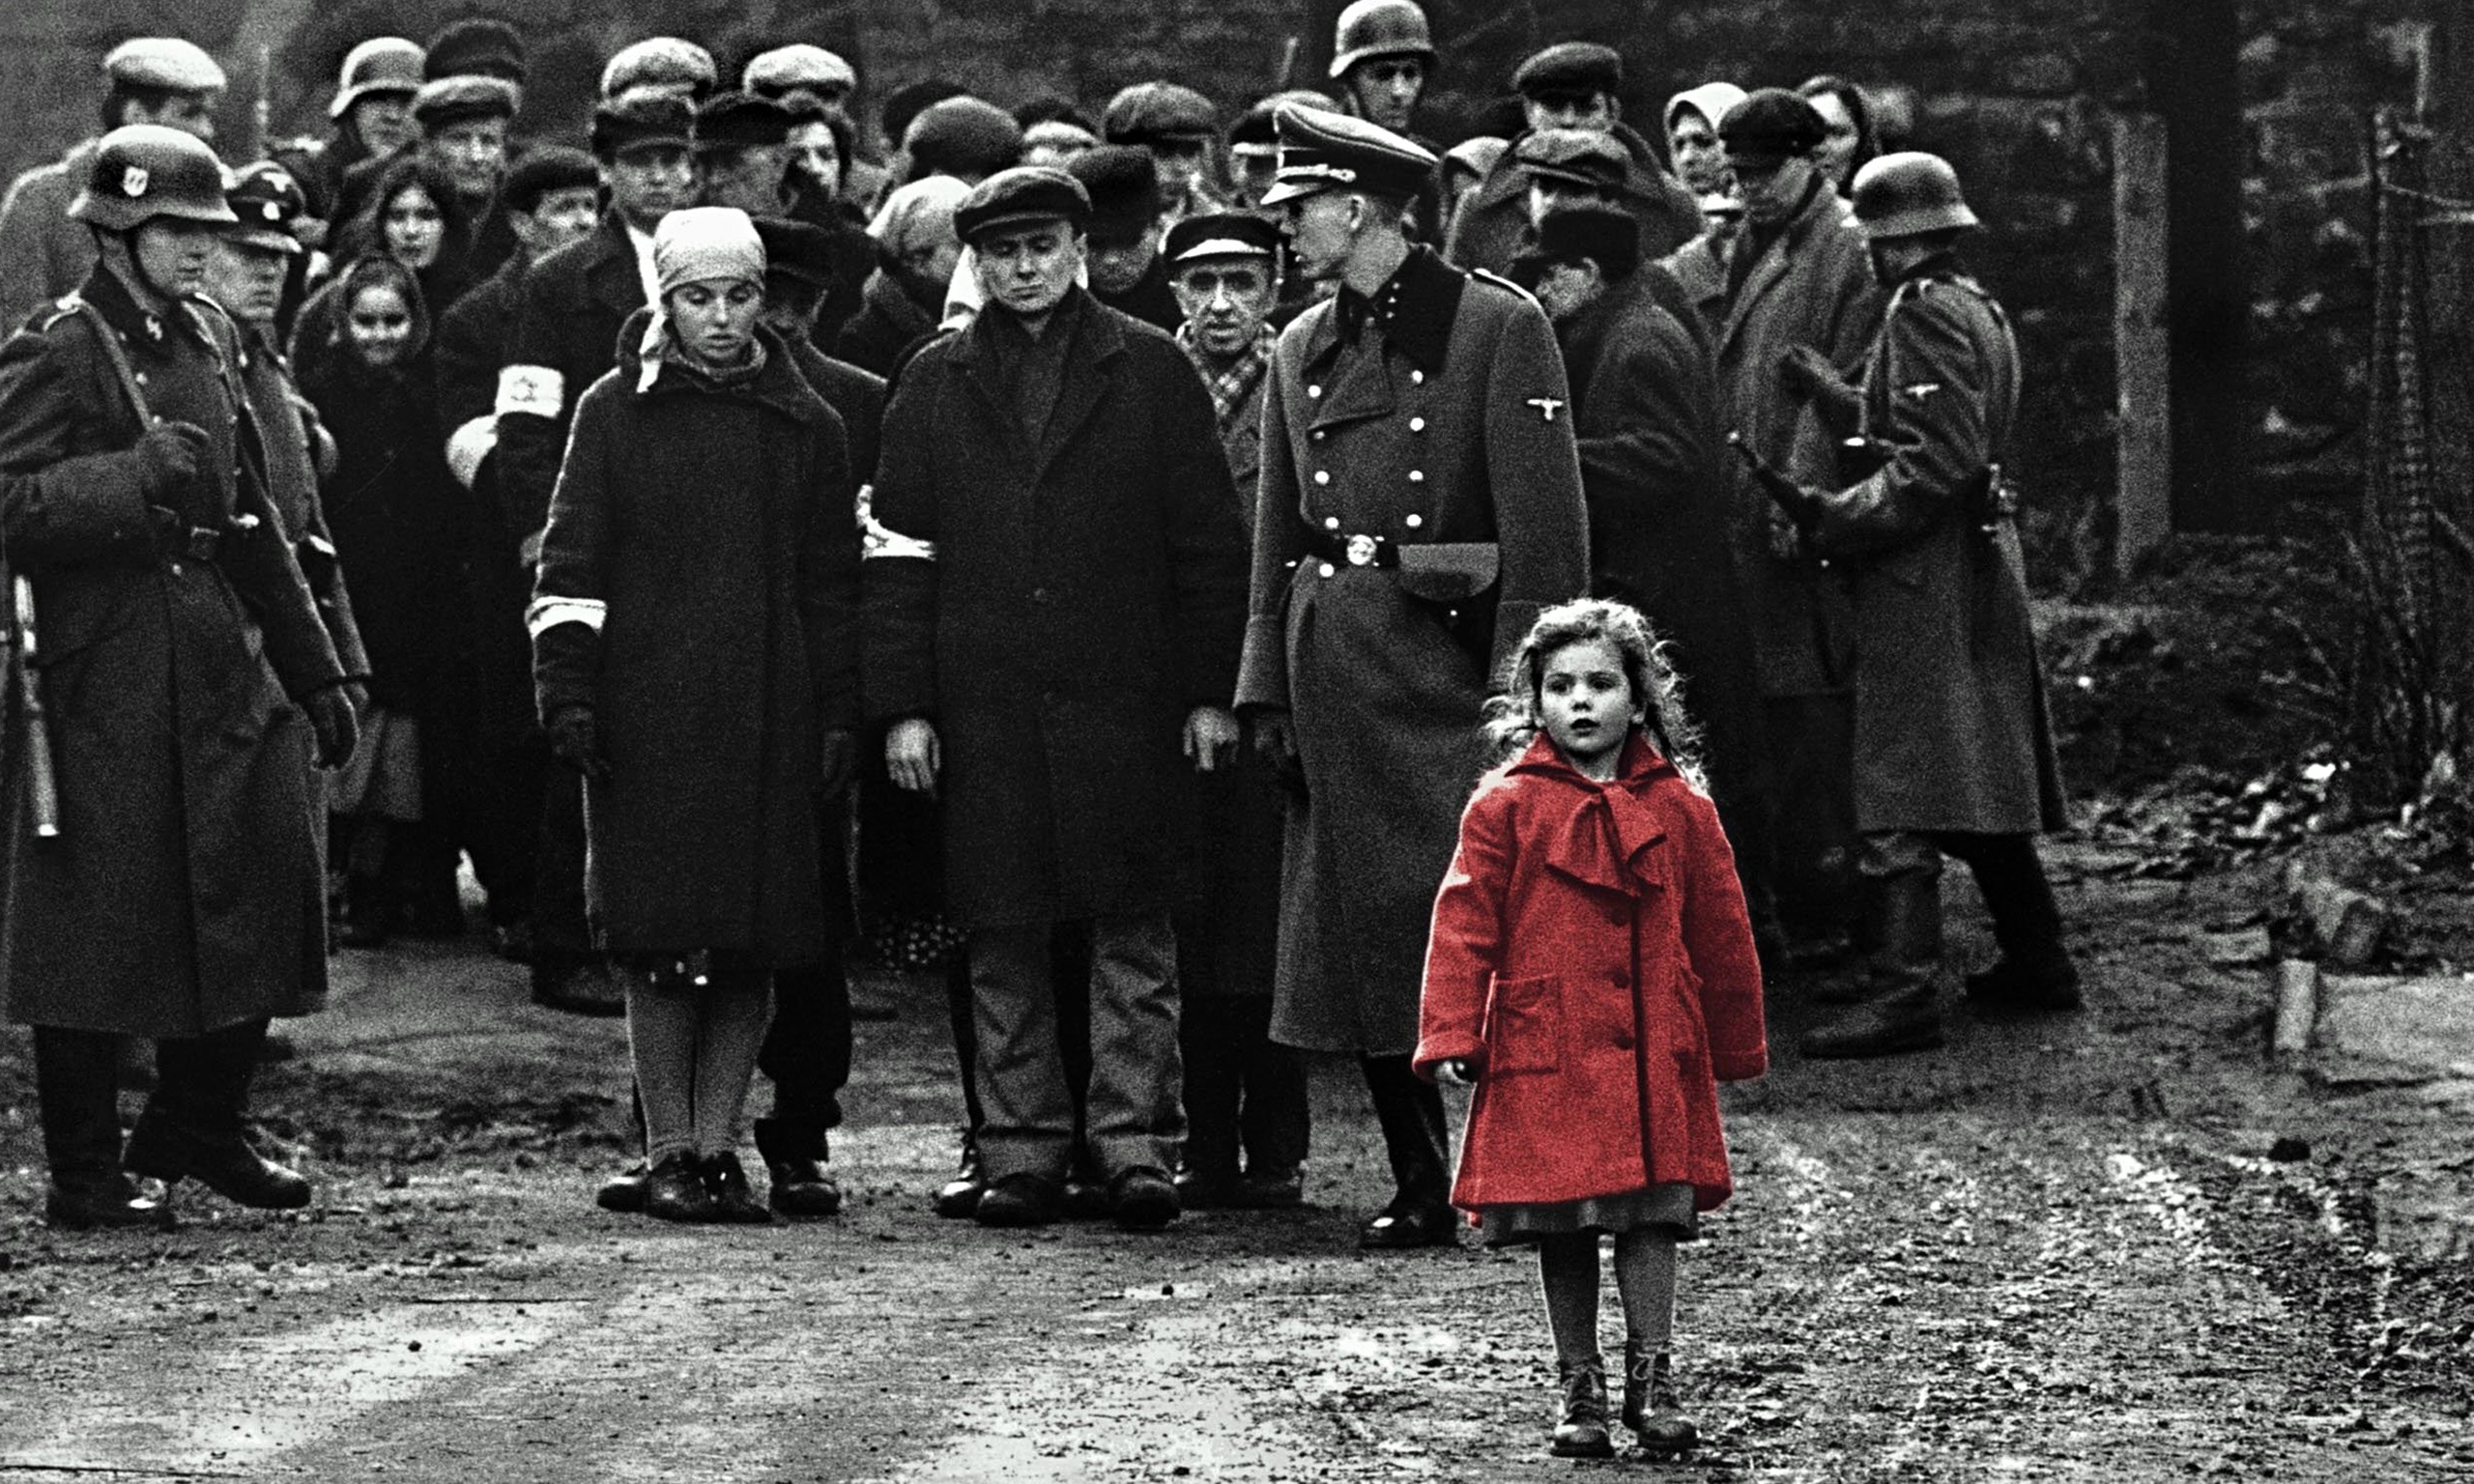 schindler's list Schindler's ark (released in america as schindler's list) is a booker prize-winning historical fiction novel published in 1982 by australian novelist thomas keneally, which was later adapted into the highly successful movie schindler's list directed by steven spielberg.